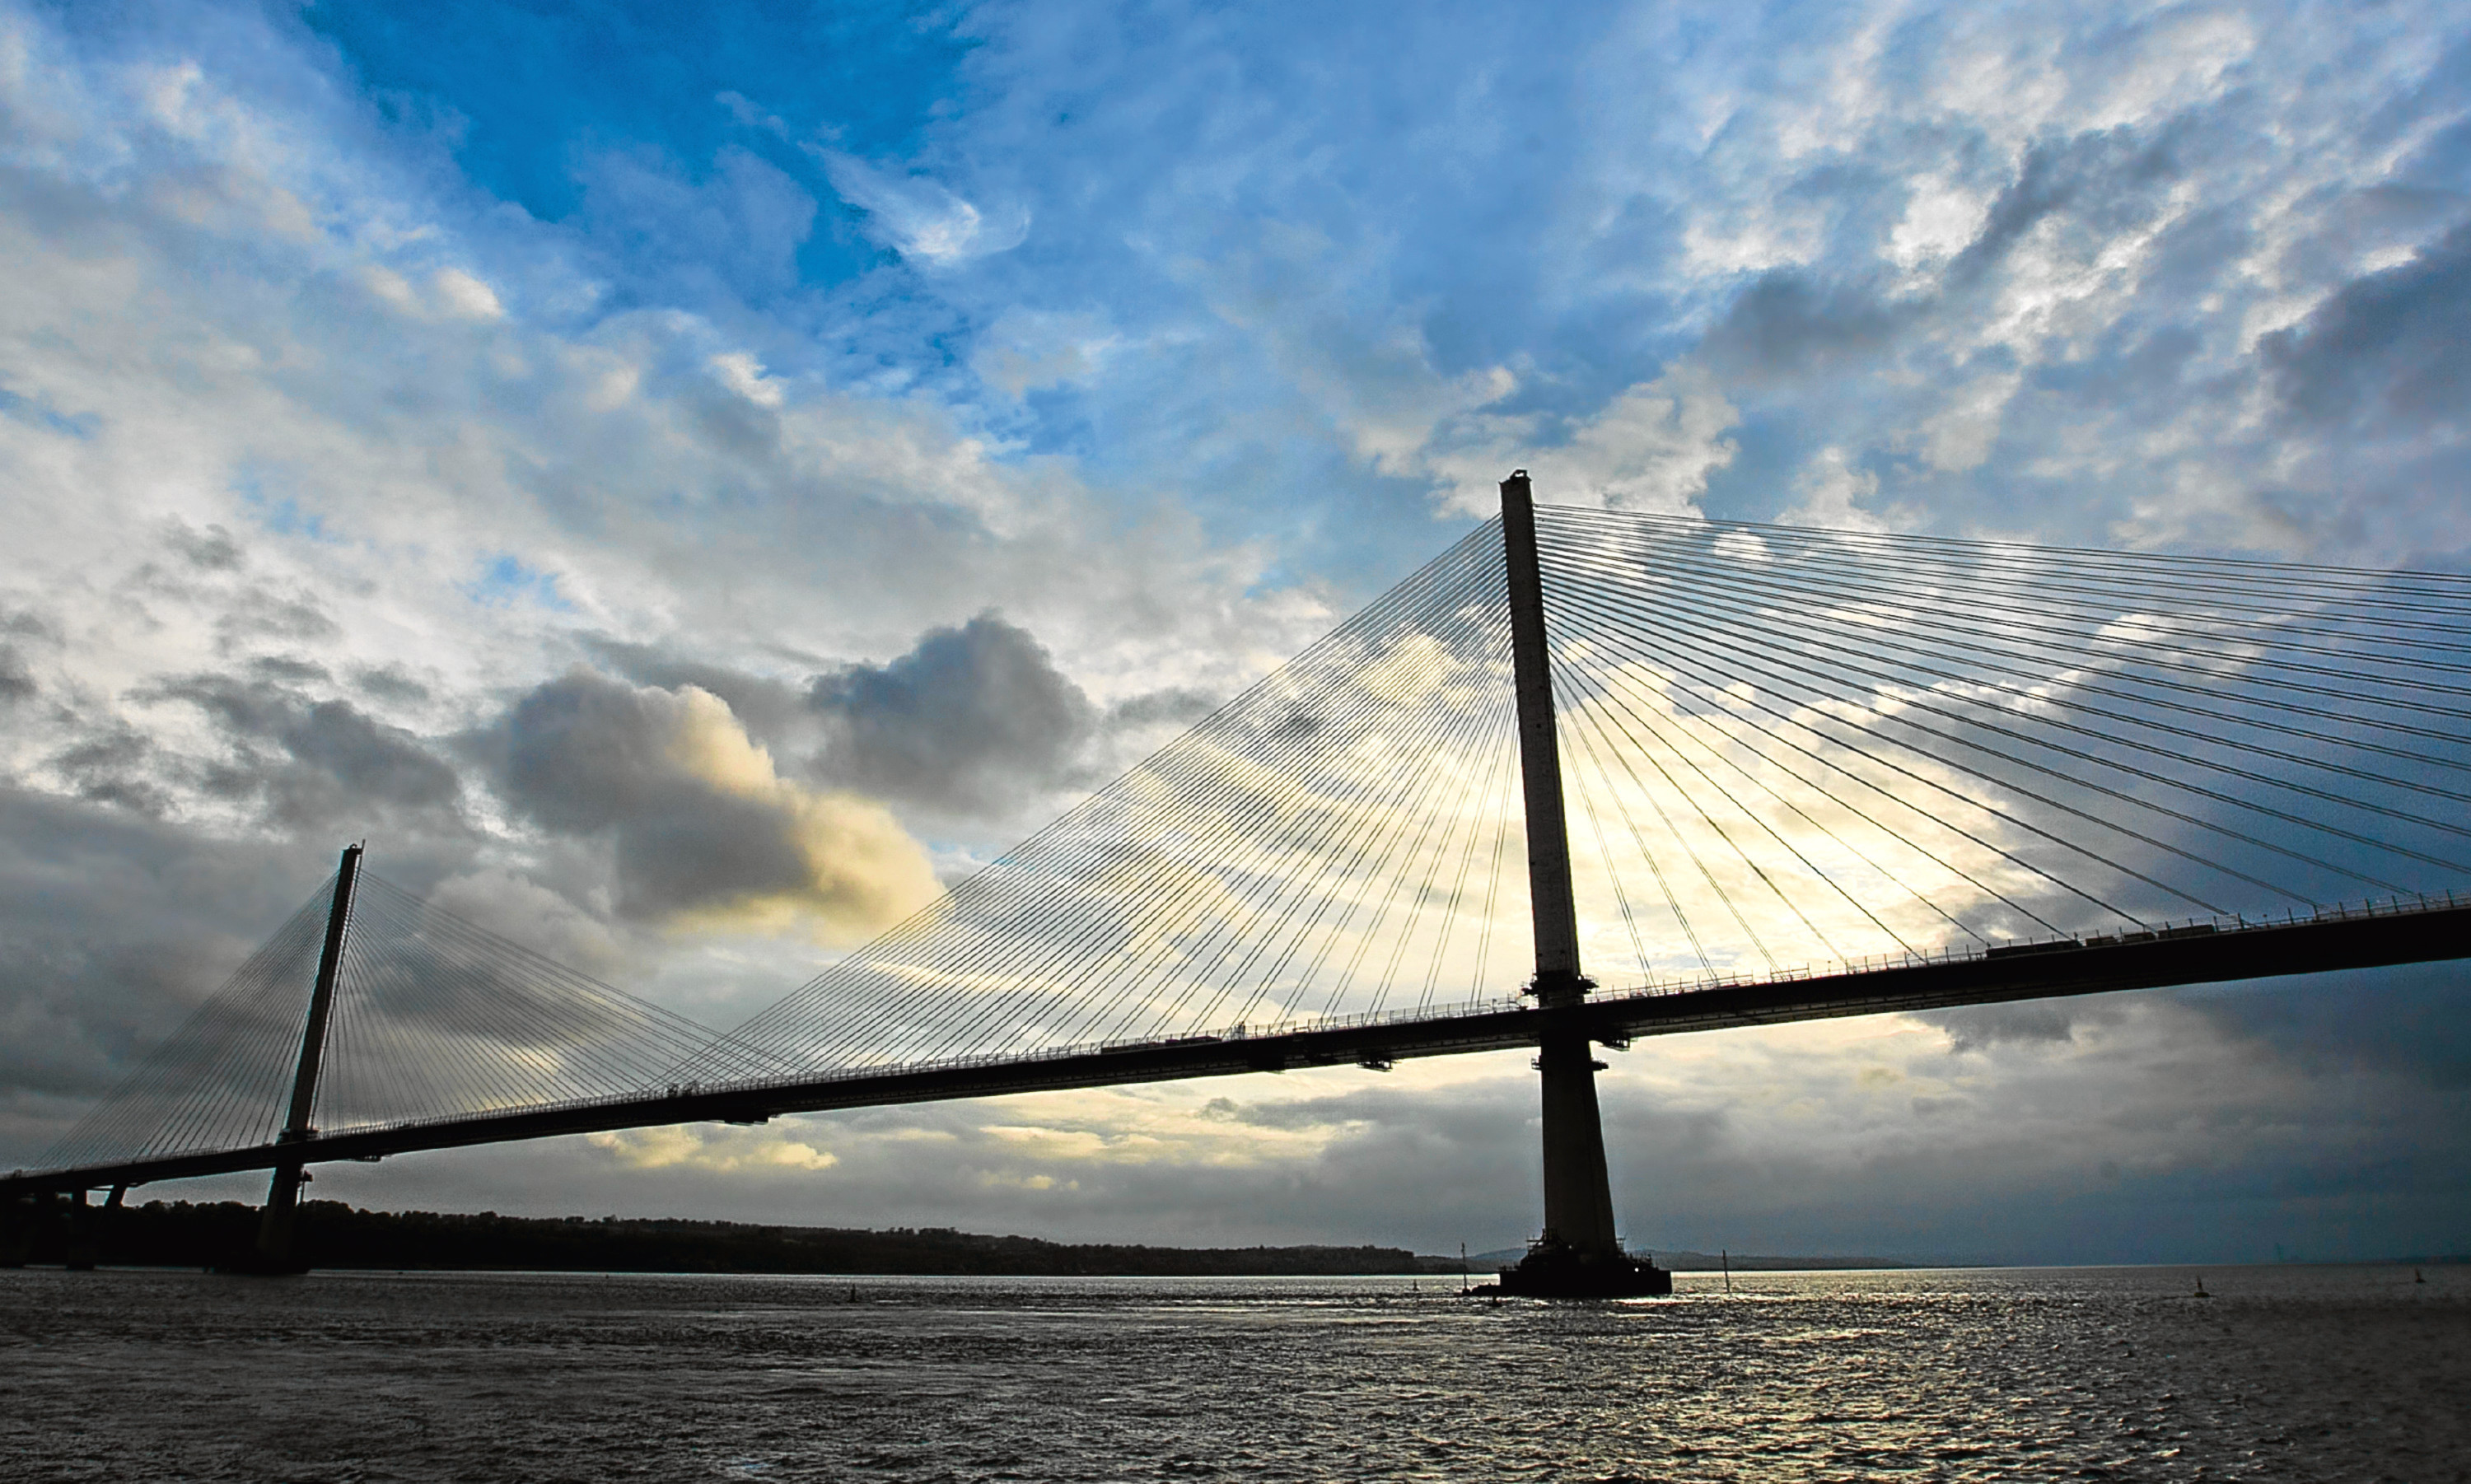 The bridge will bring a boost to Fife